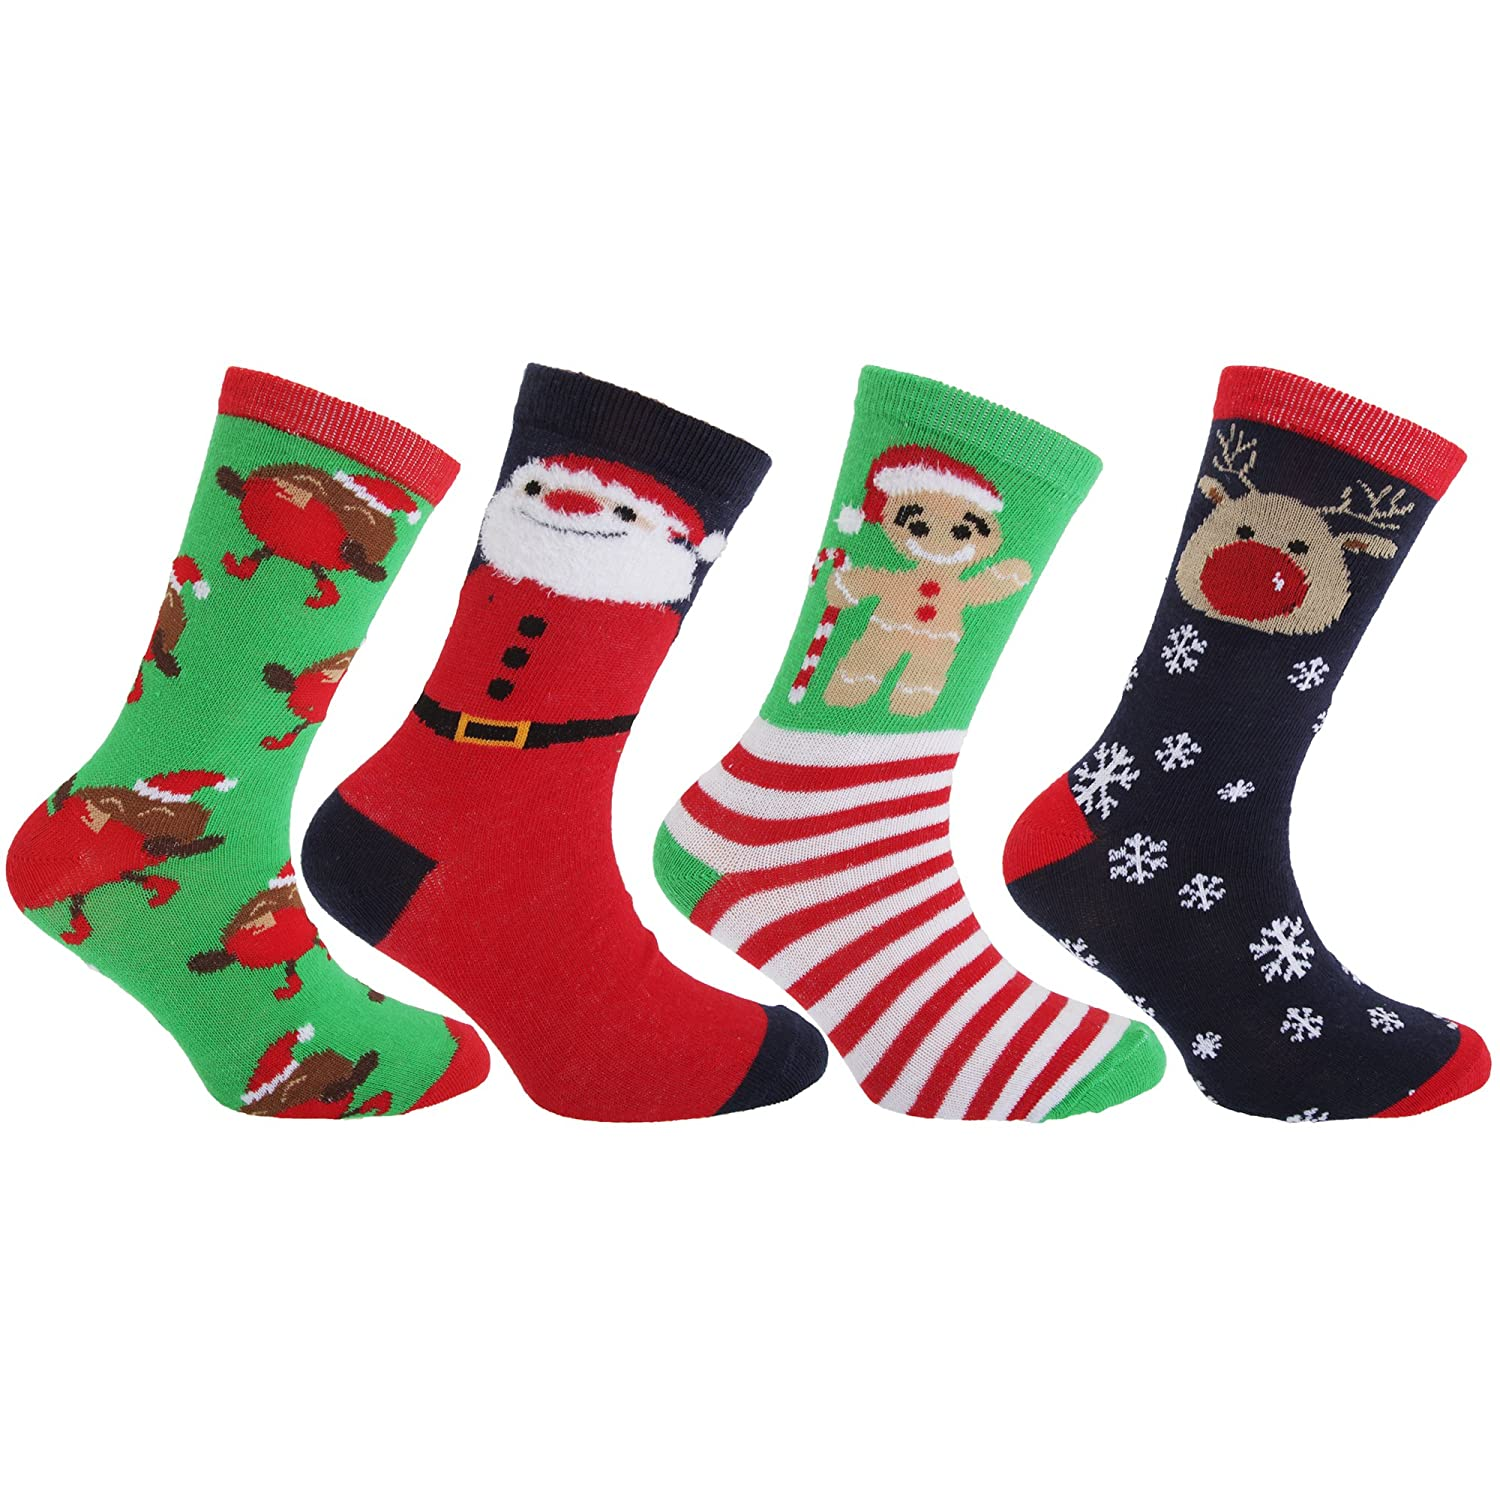 FLOSO® Childrens/Kids Christmas Character Novelty Socks (Pack Of 4 ...